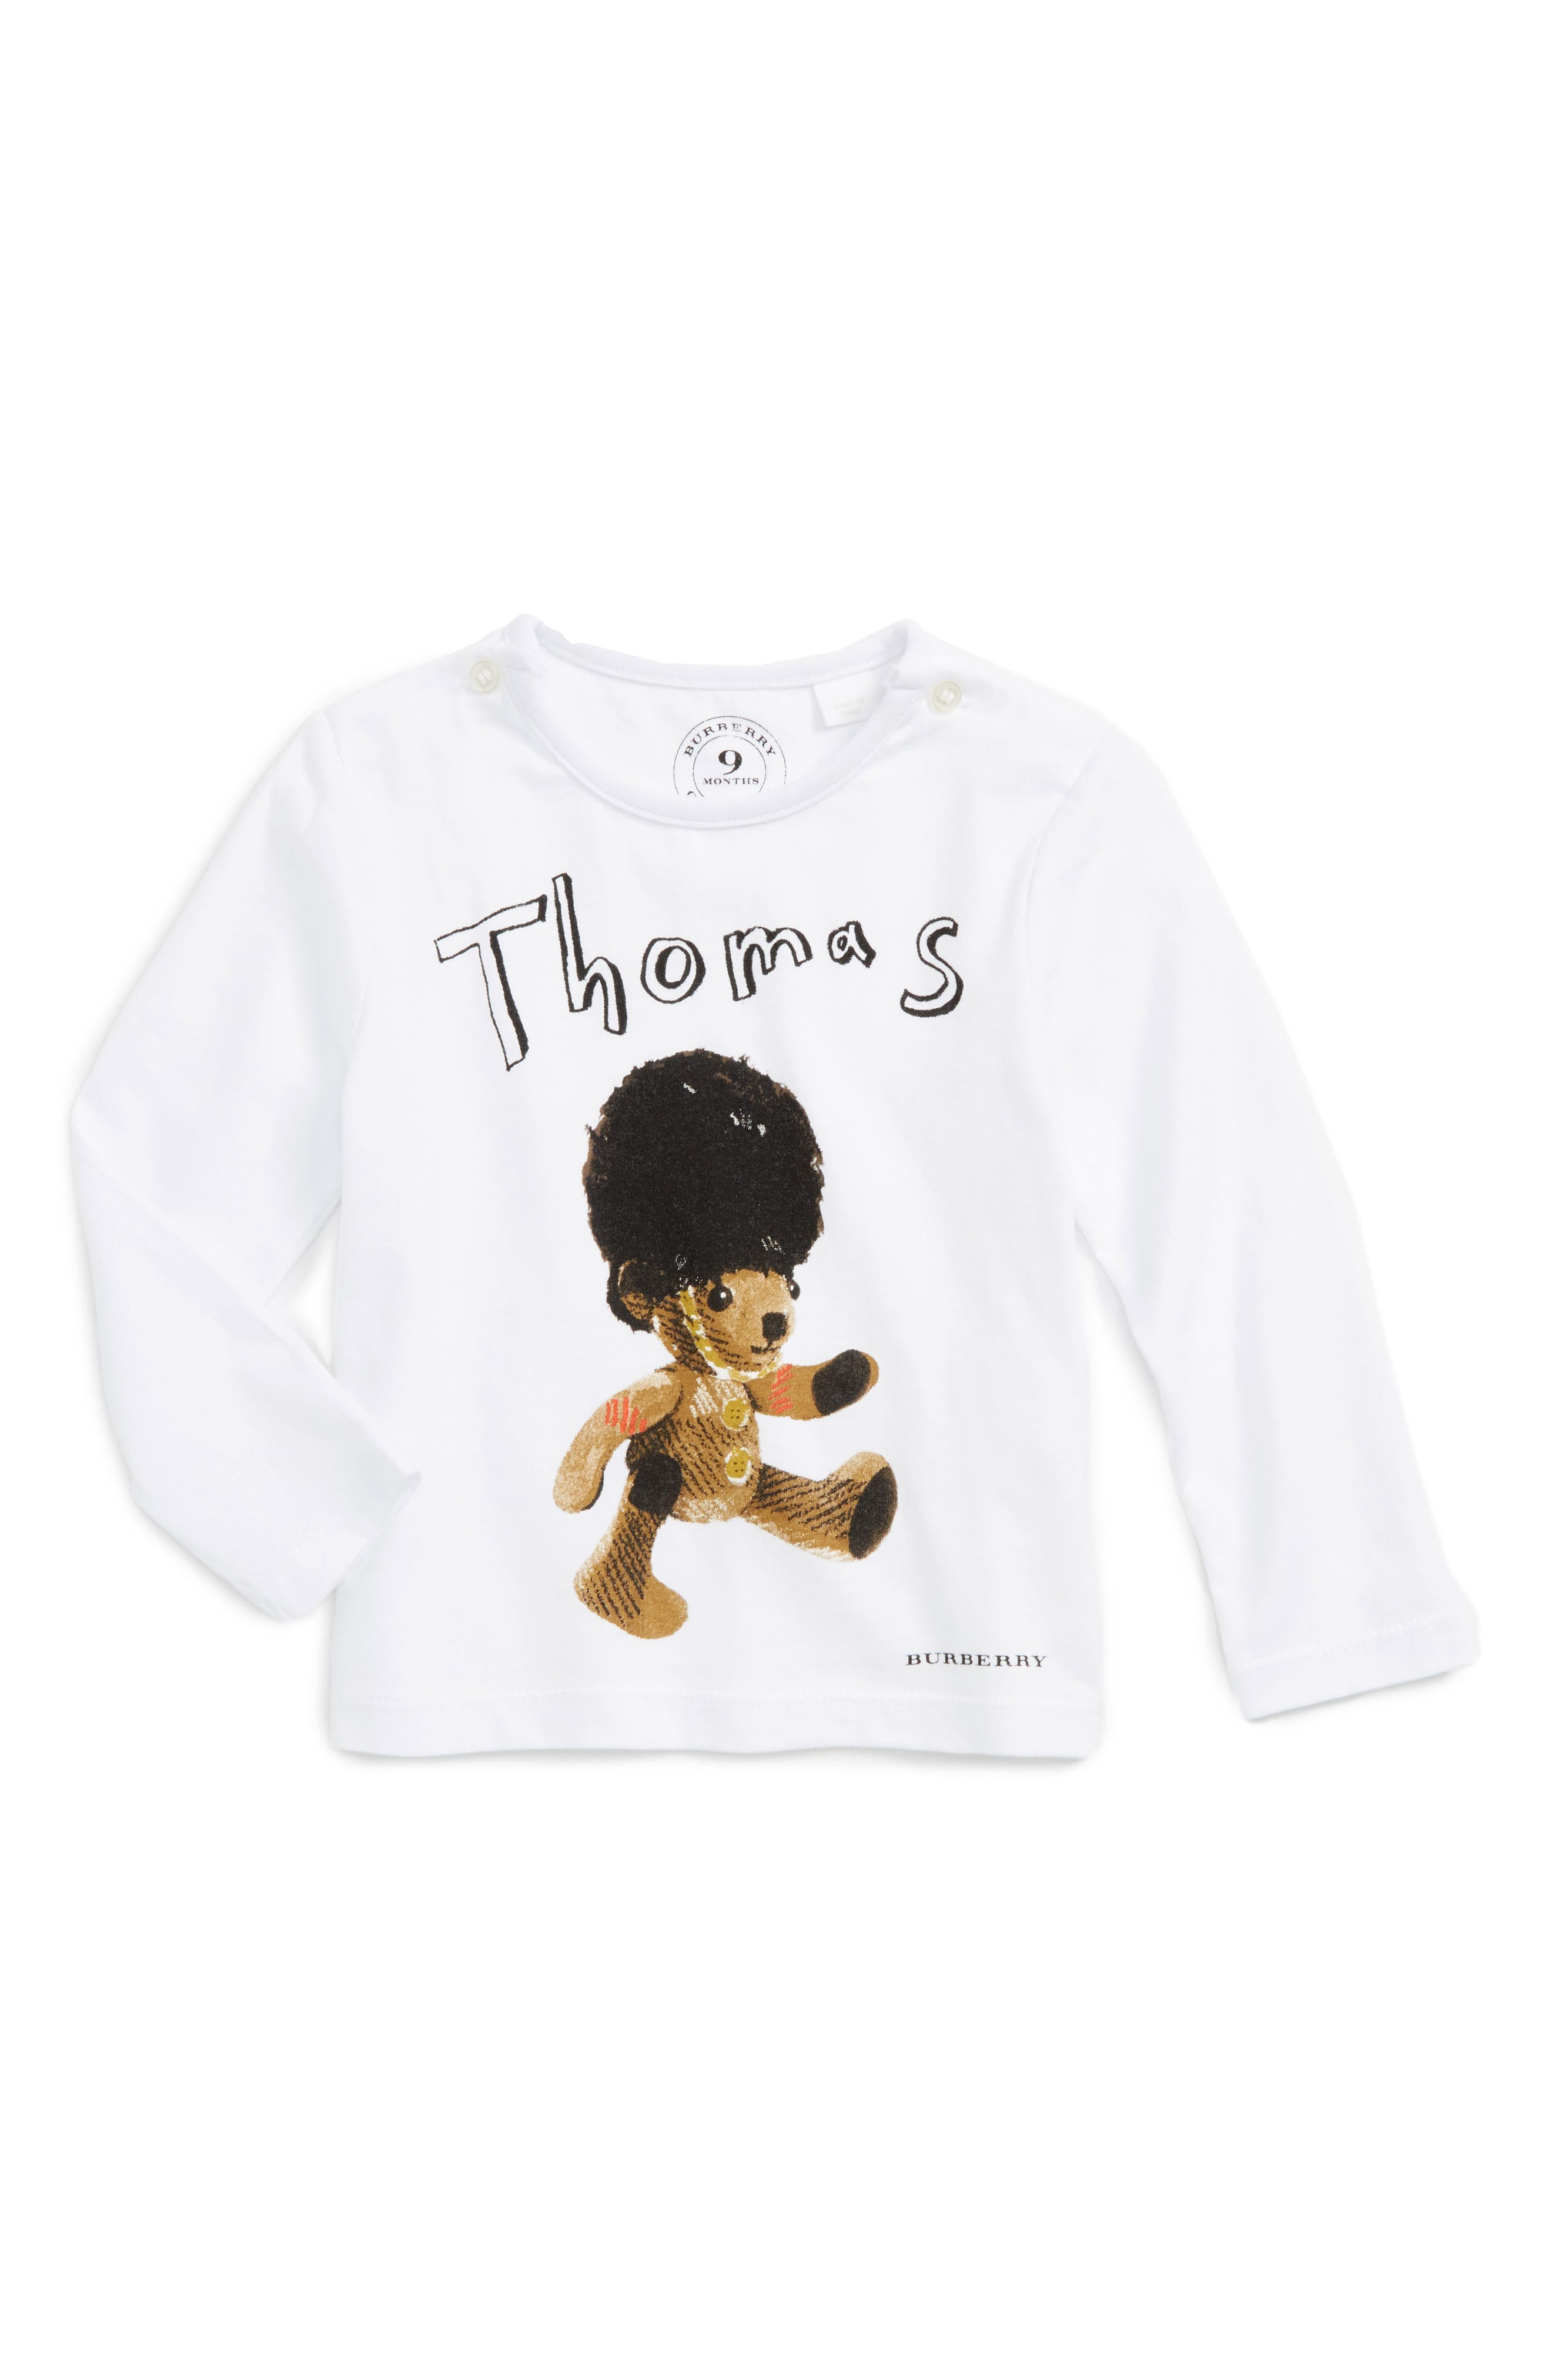 Thomas Bear Graphic T-Shirt,                         Main,                         color, White